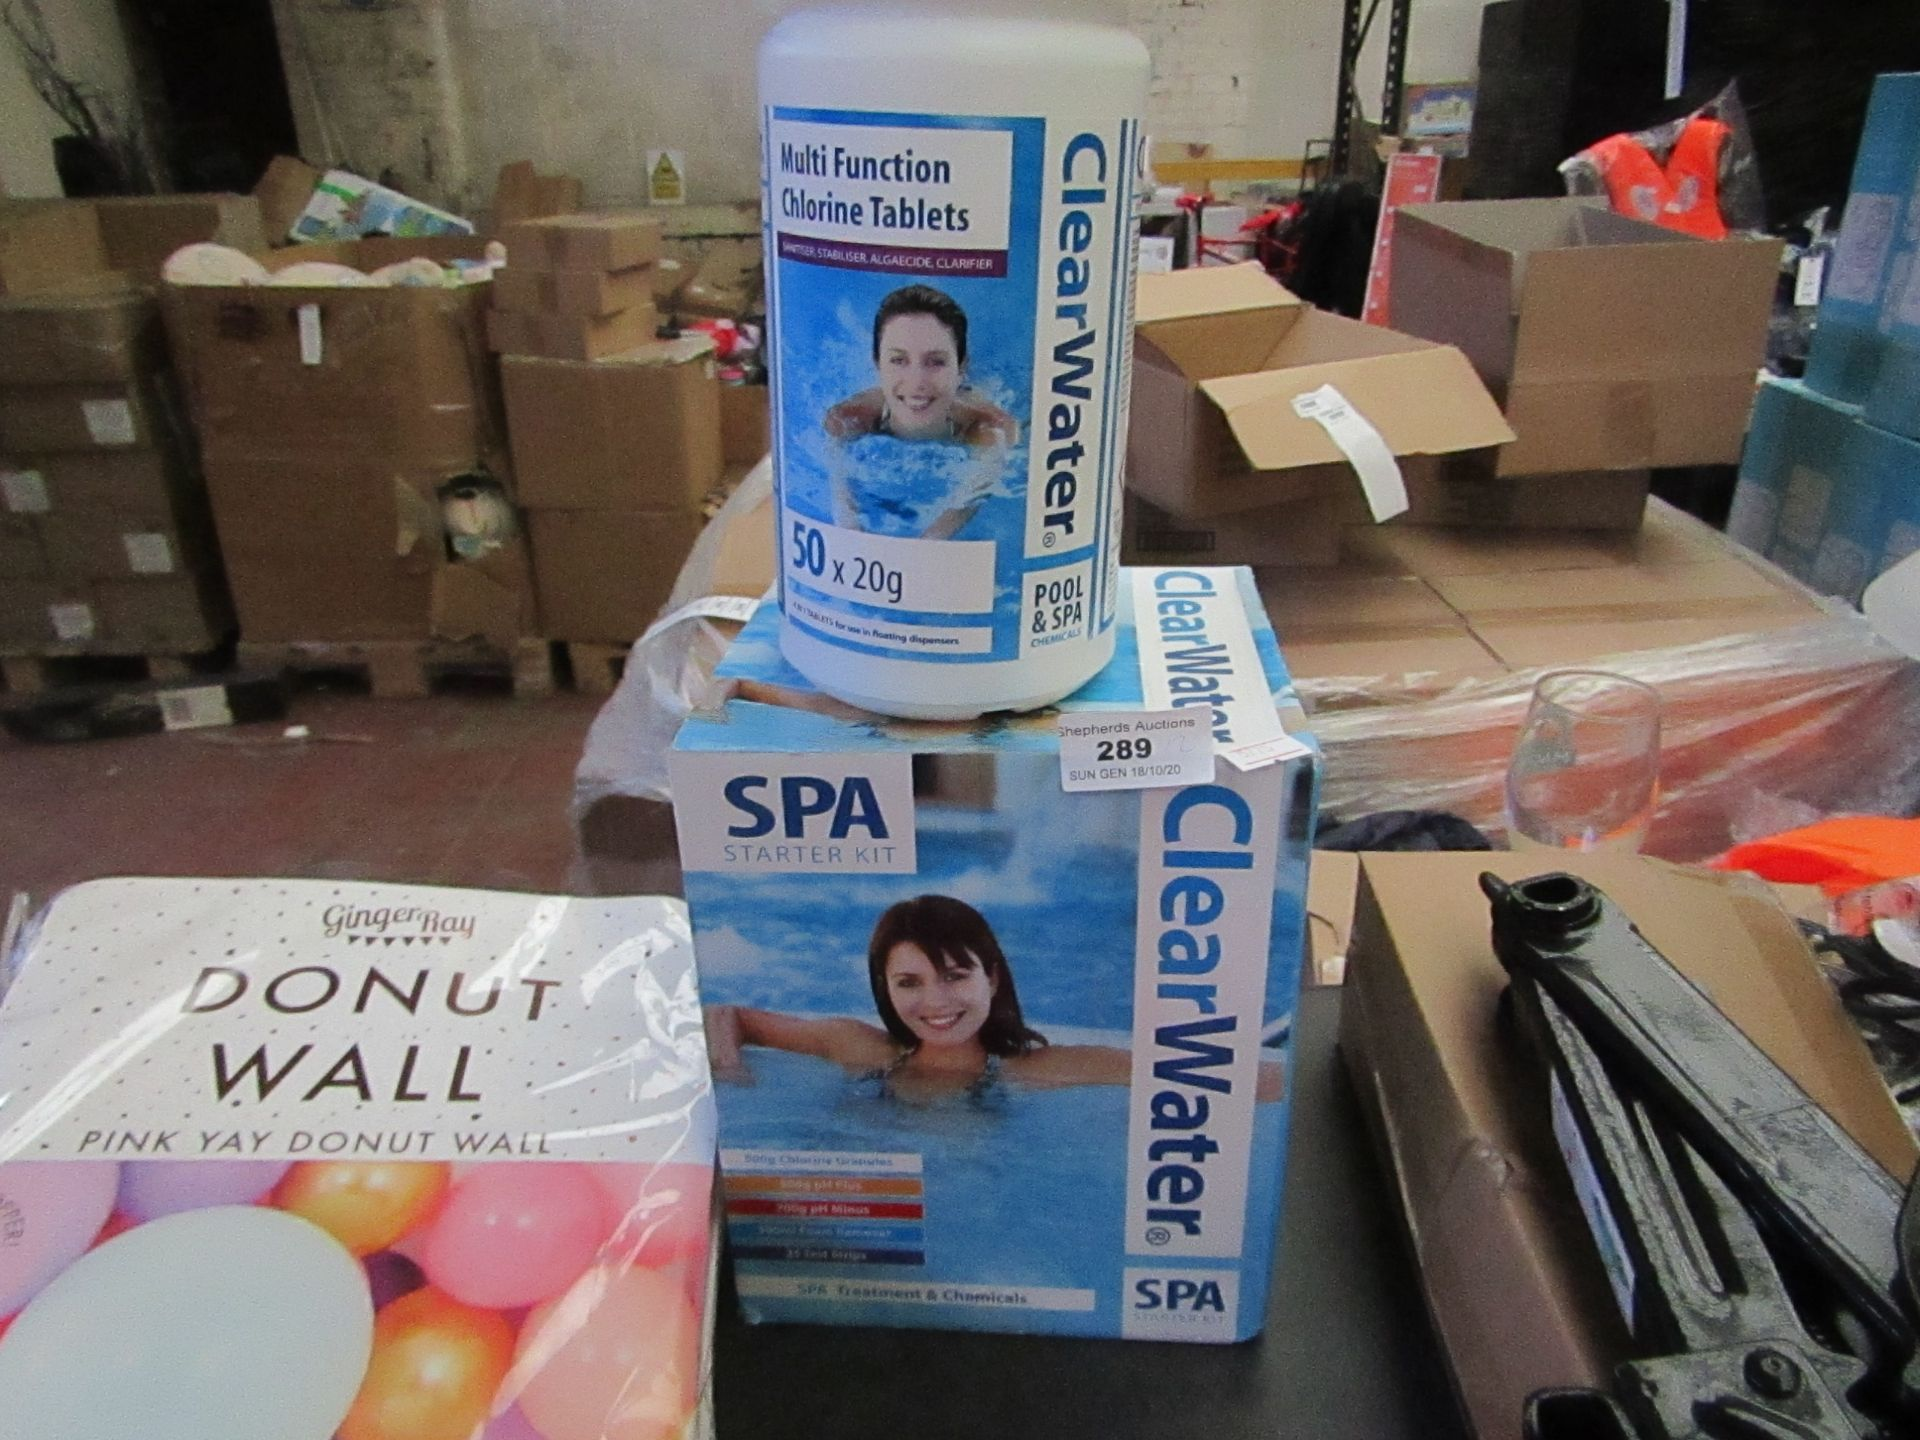 Lot 289 - 2 items Being a Clear Water Spa Starter Set & 50 x 20g Multi Function Chlorine Tablets. Both Look